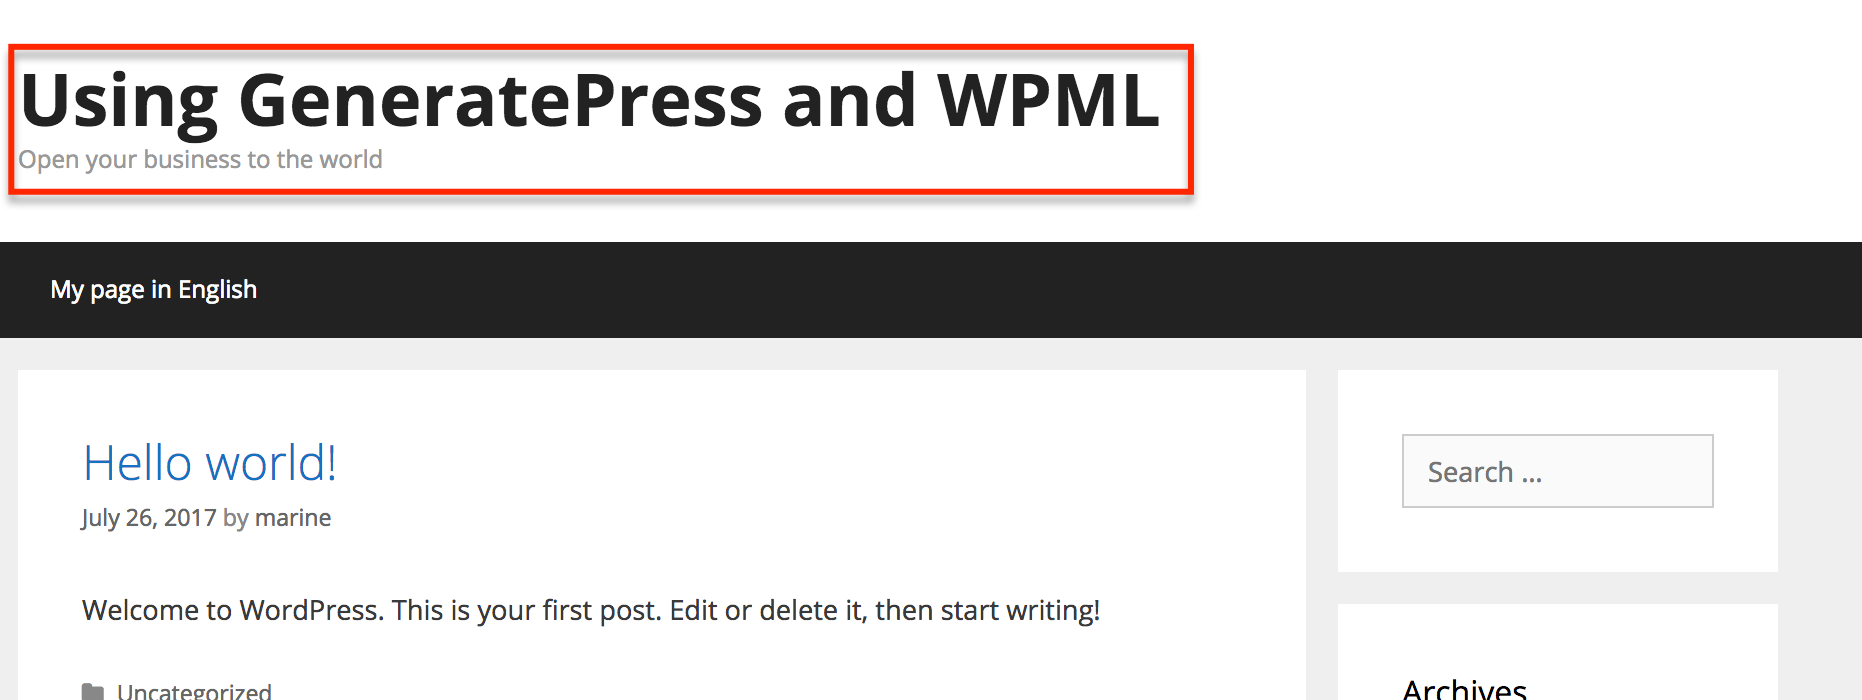 WPML and GeneratePress